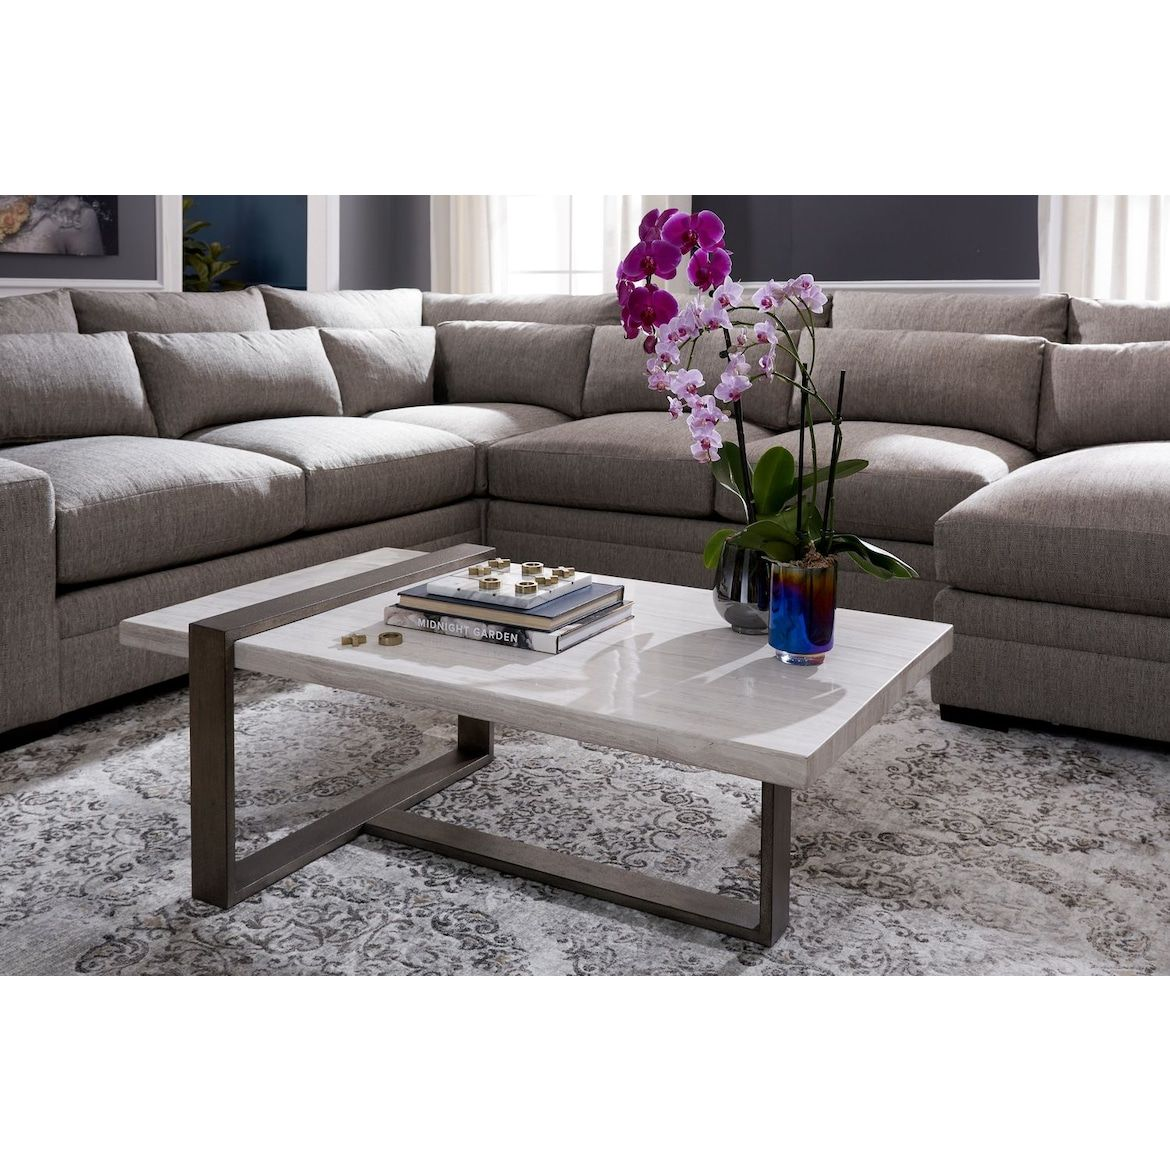 Celadon Marble Coffee Table Value City Furniture And Mattresses Value City Furniture Coffee Table Marble Coffee Table [ 1170 x 1170 Pixel ]